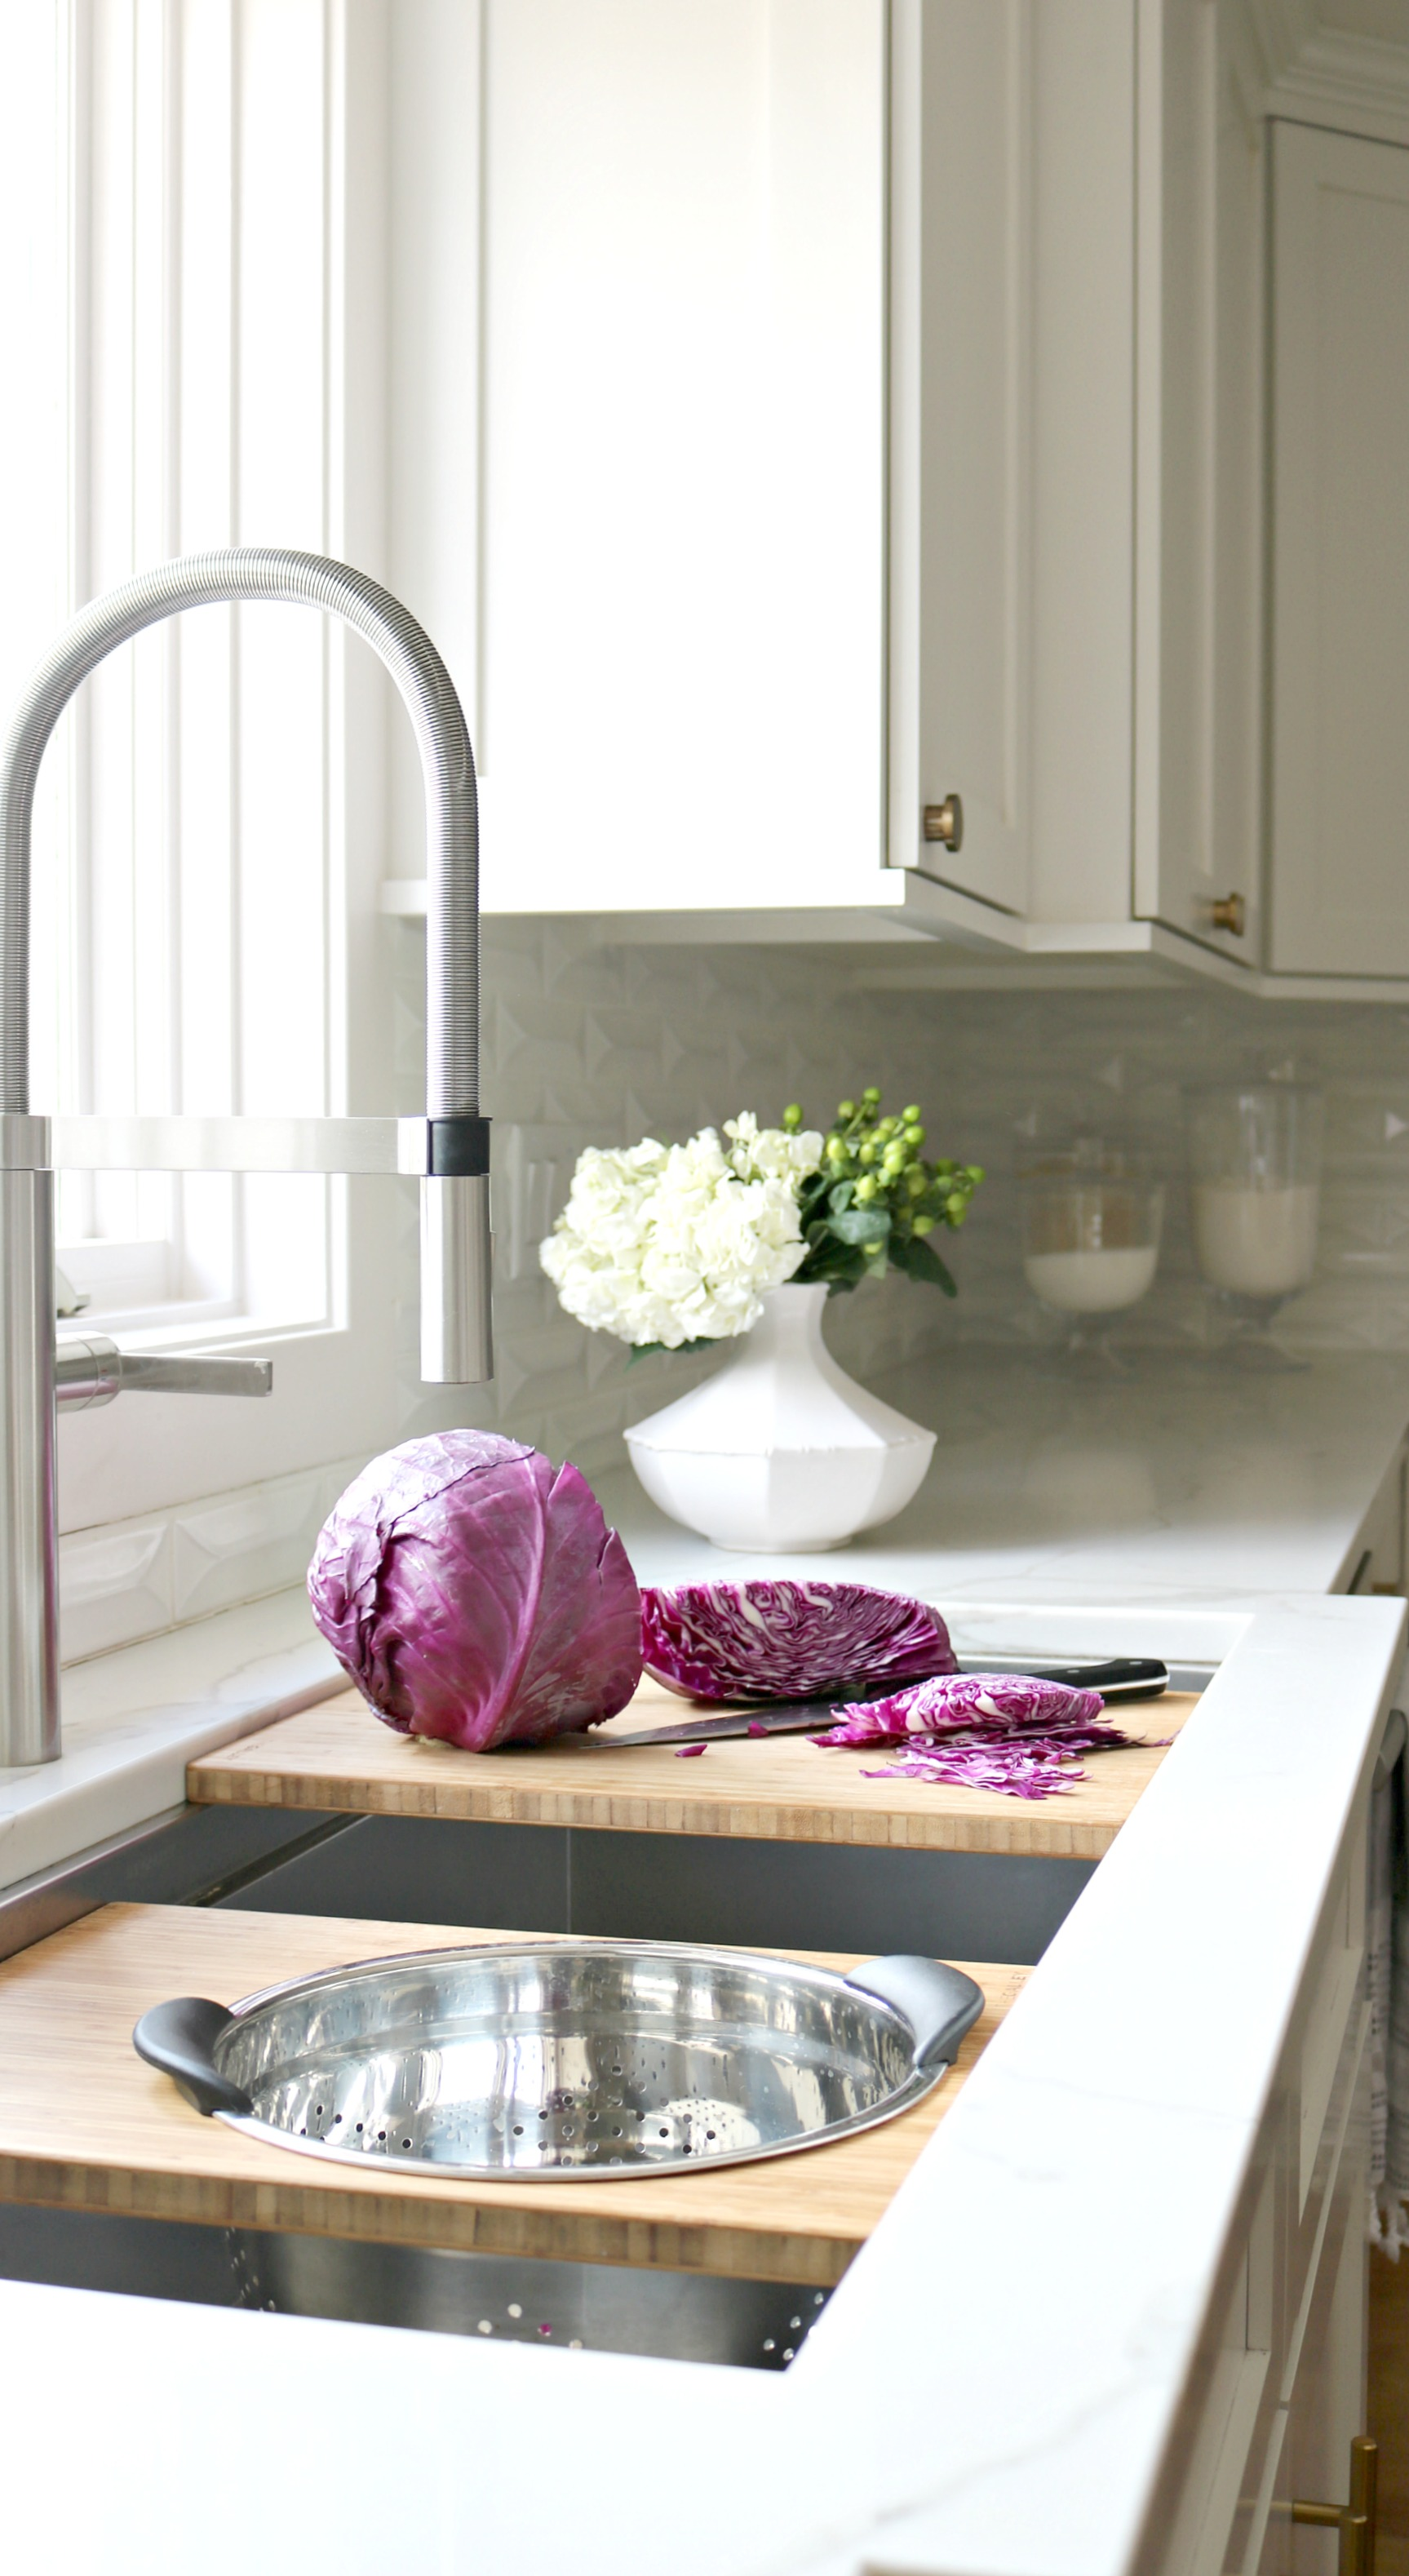 Kelle Dame Interiors Galley Sink.jpg